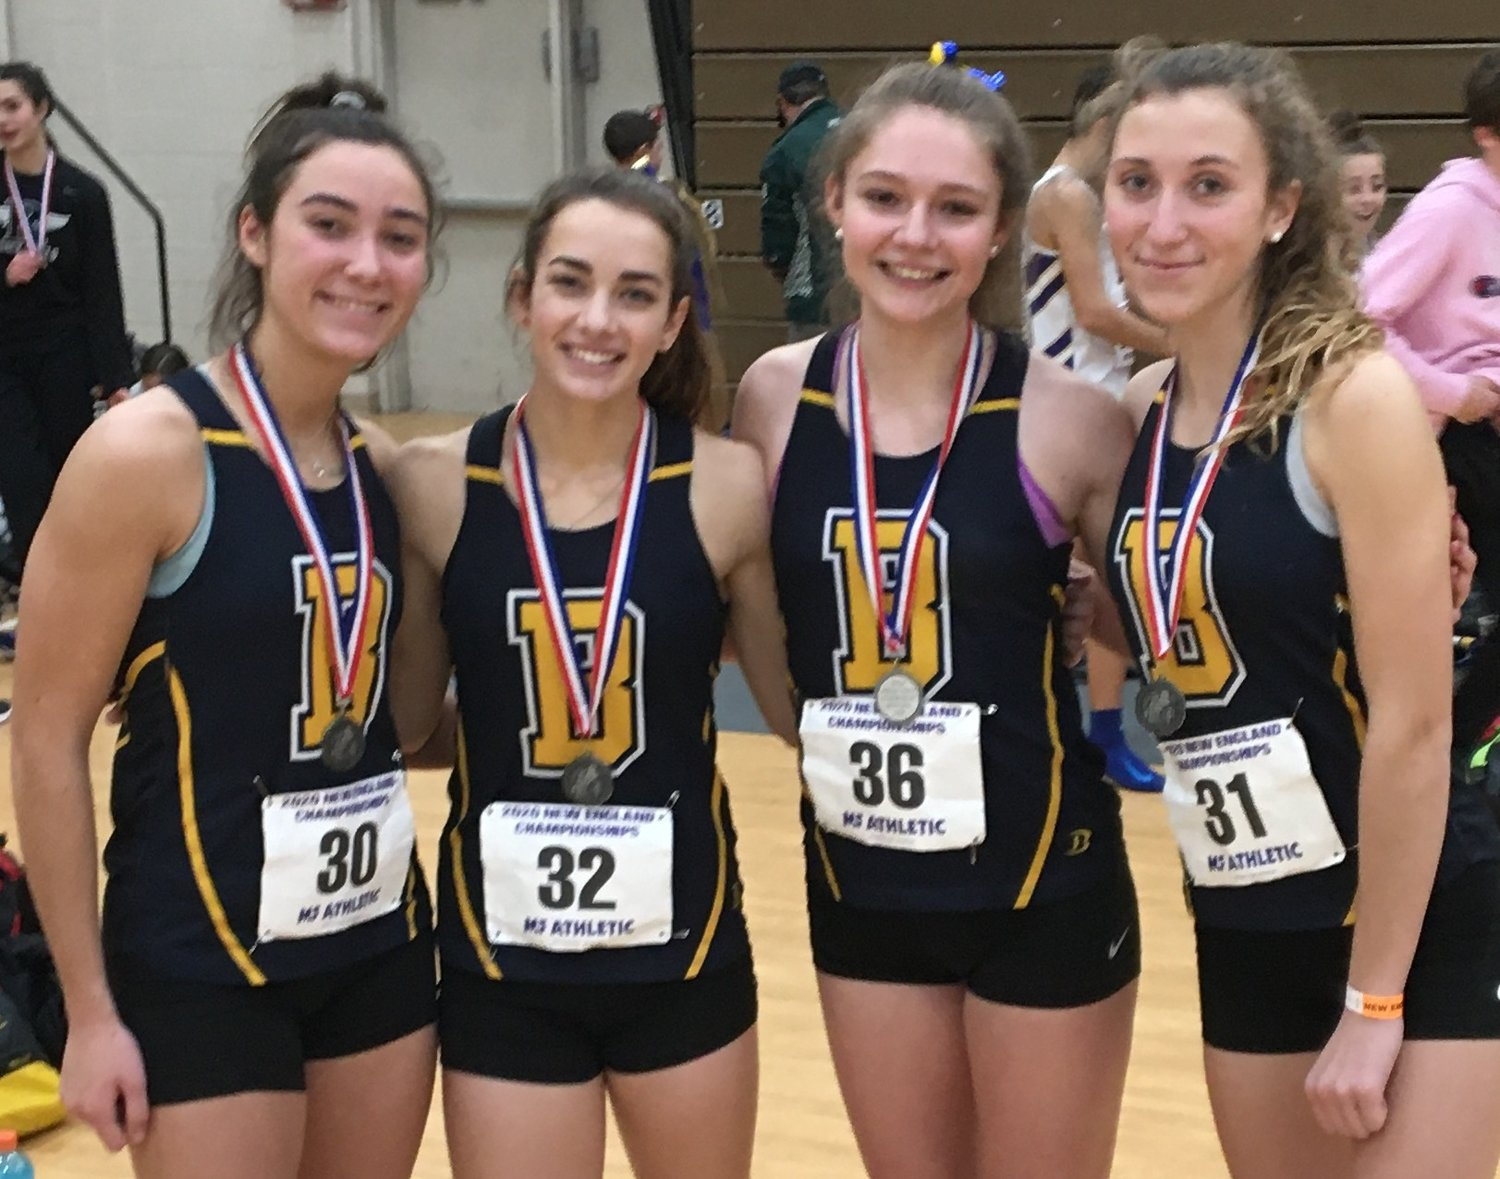 Members of Barrington's record-breaking 4x400-meter relay team, Tess Gagliano, Julia Howarth, Jordynn Palethorpe and Violet Gagliano (from left to right) would have competed at nationals.